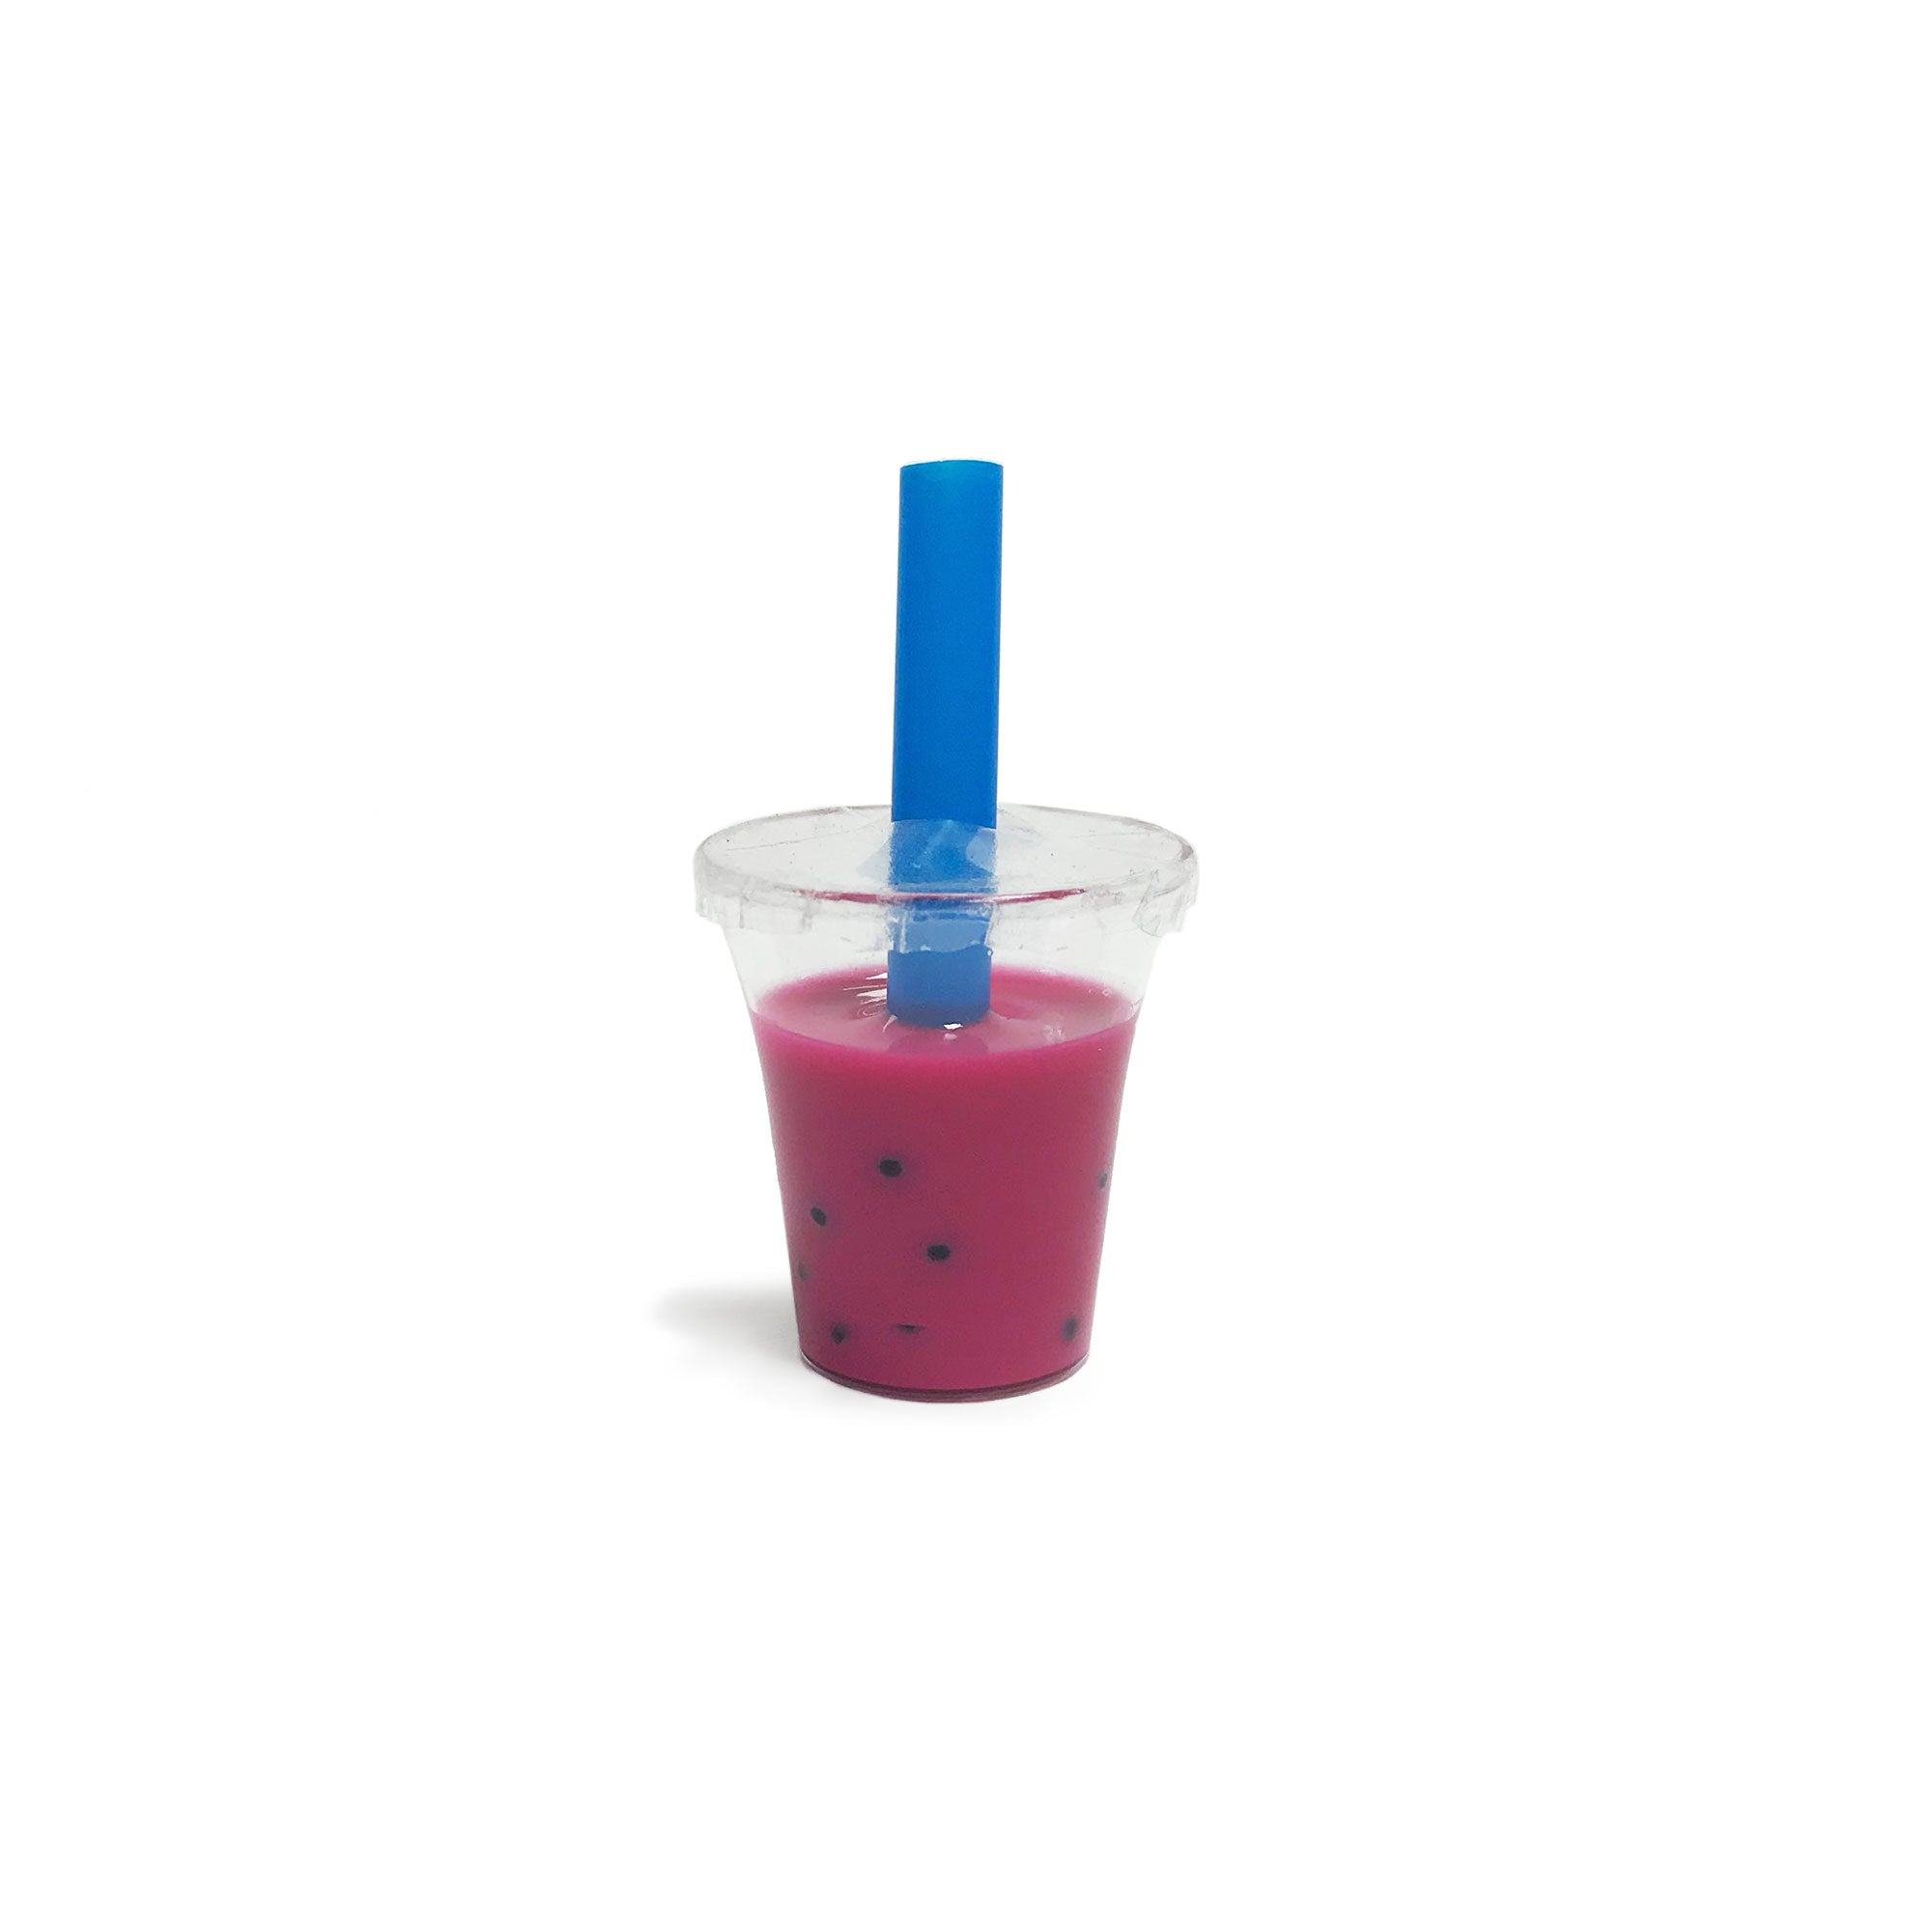 Acai Boba Cup for Resin Boba Bot